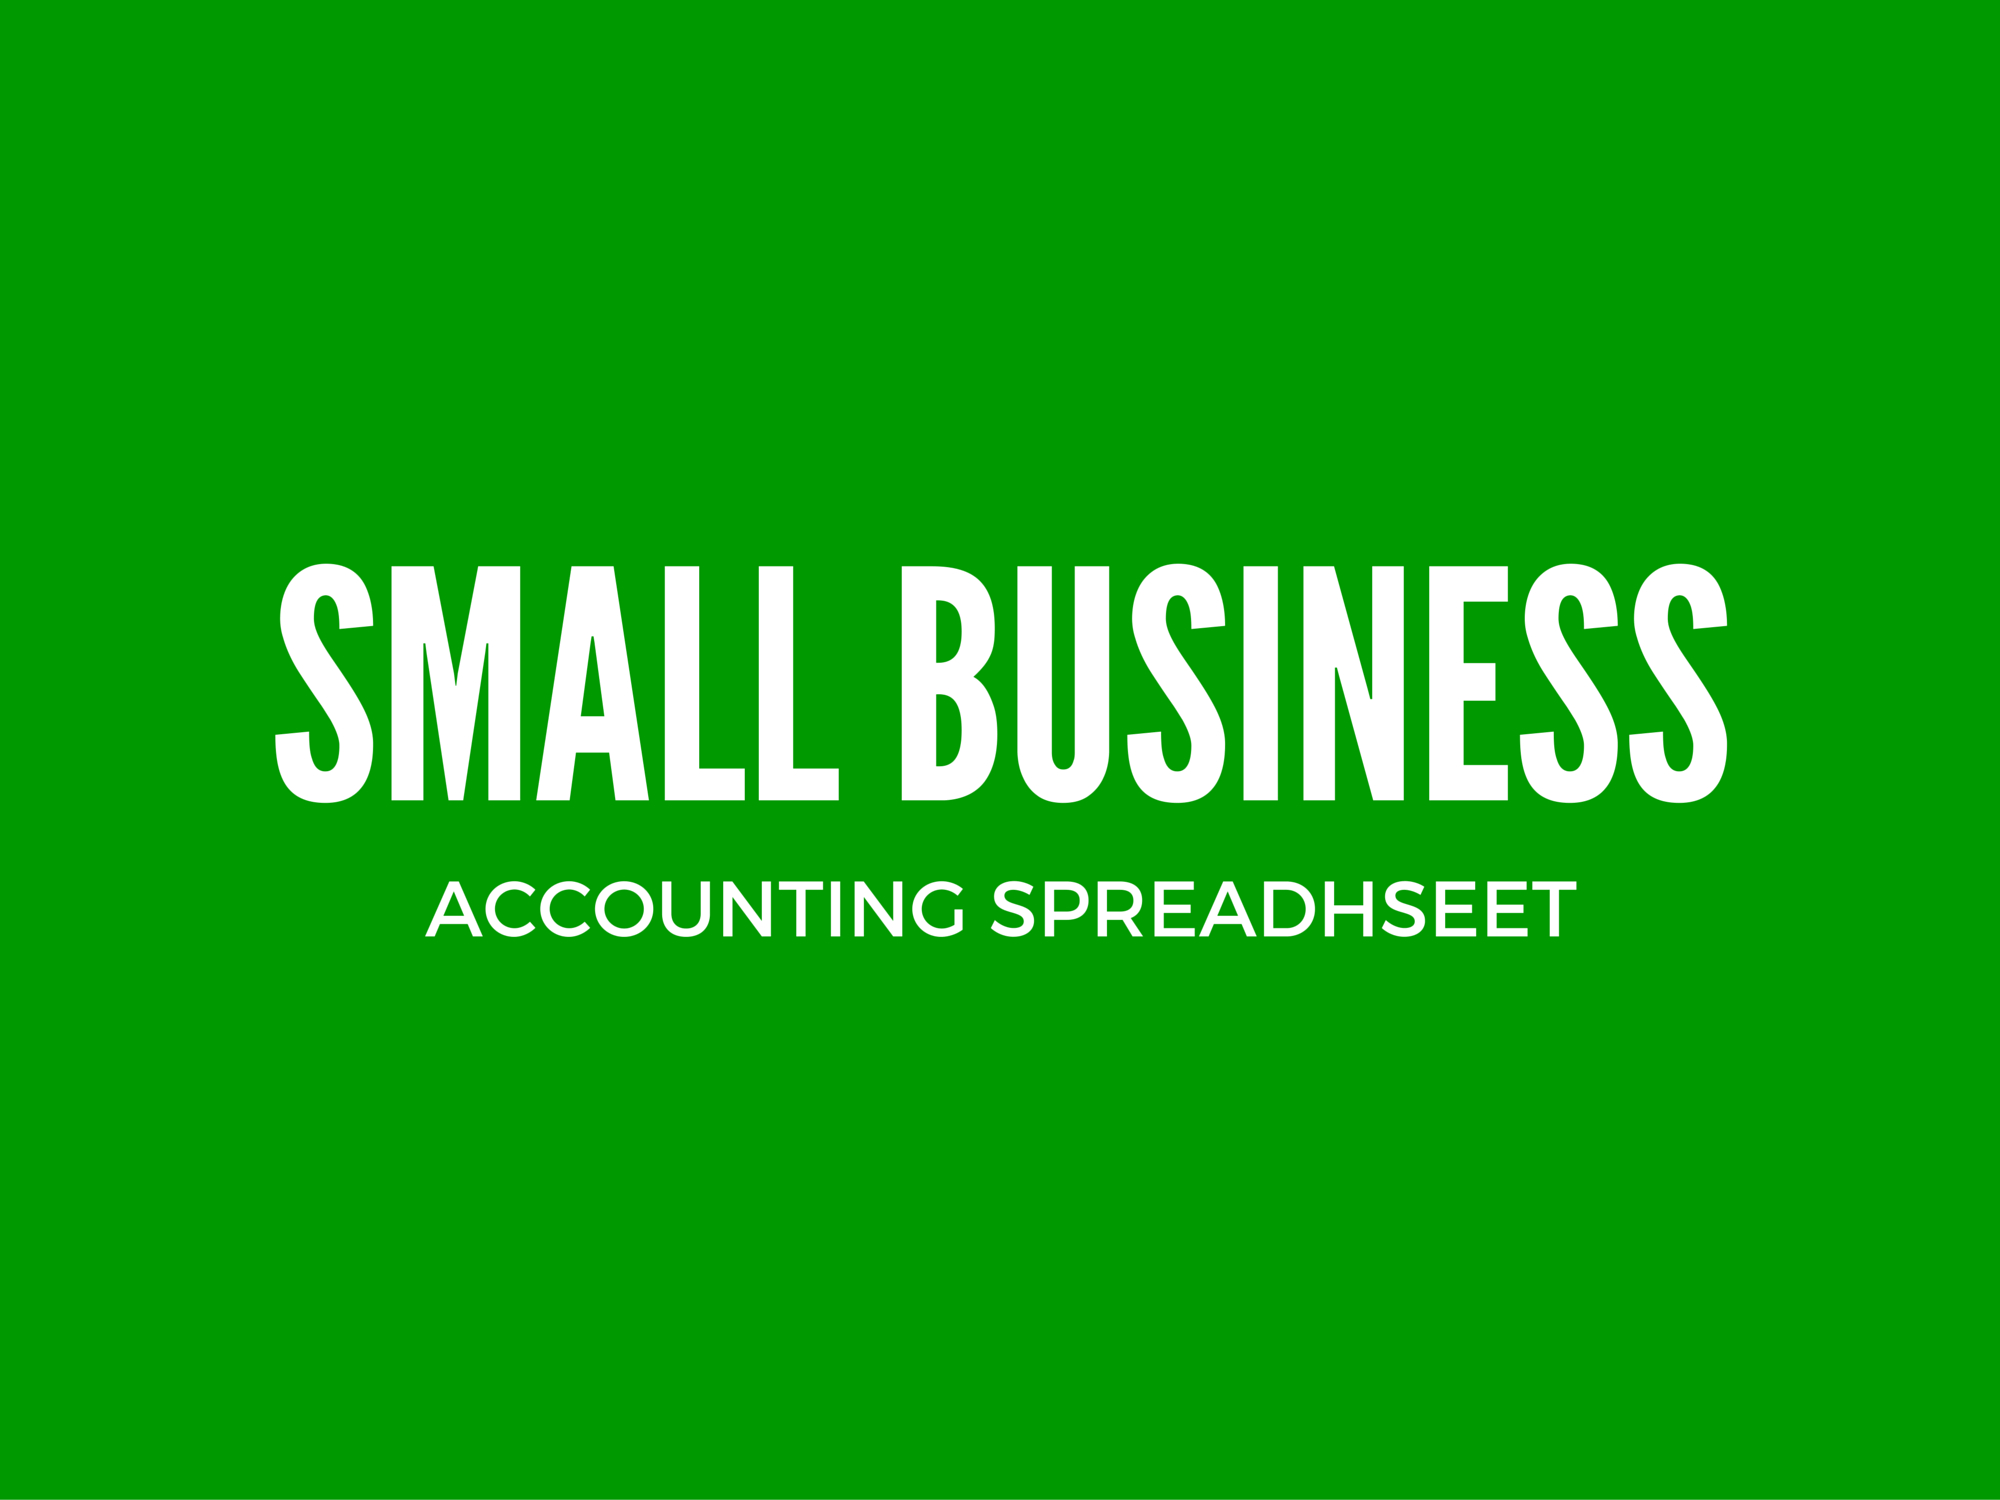 Excel Spreadsheet Template For Small Business Expenses